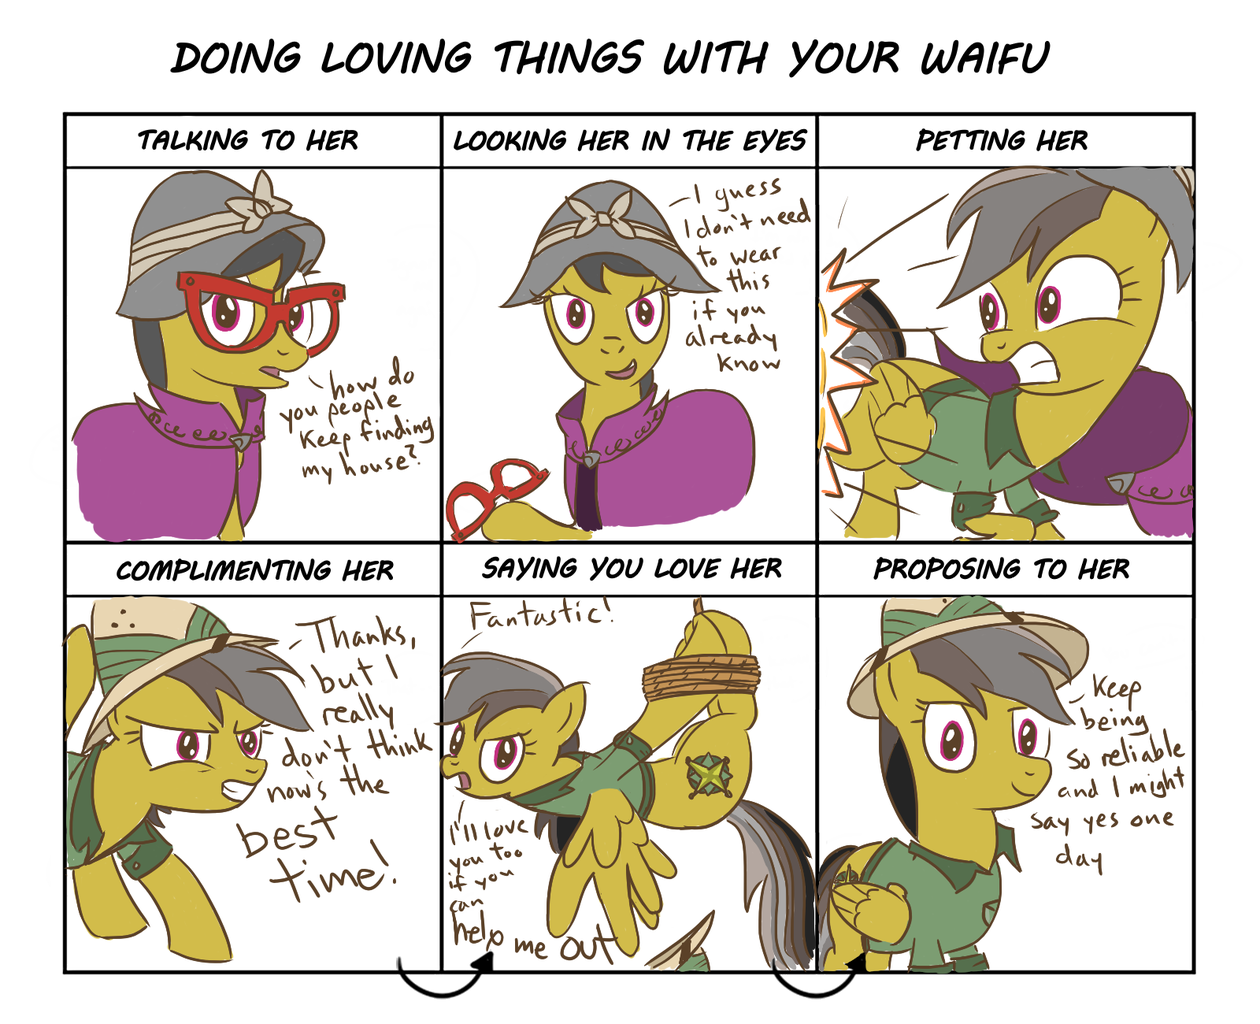 Equestria Daily Mlp Stuff Not Doing Hurtful Things To Your Waifu Charts The Good Side